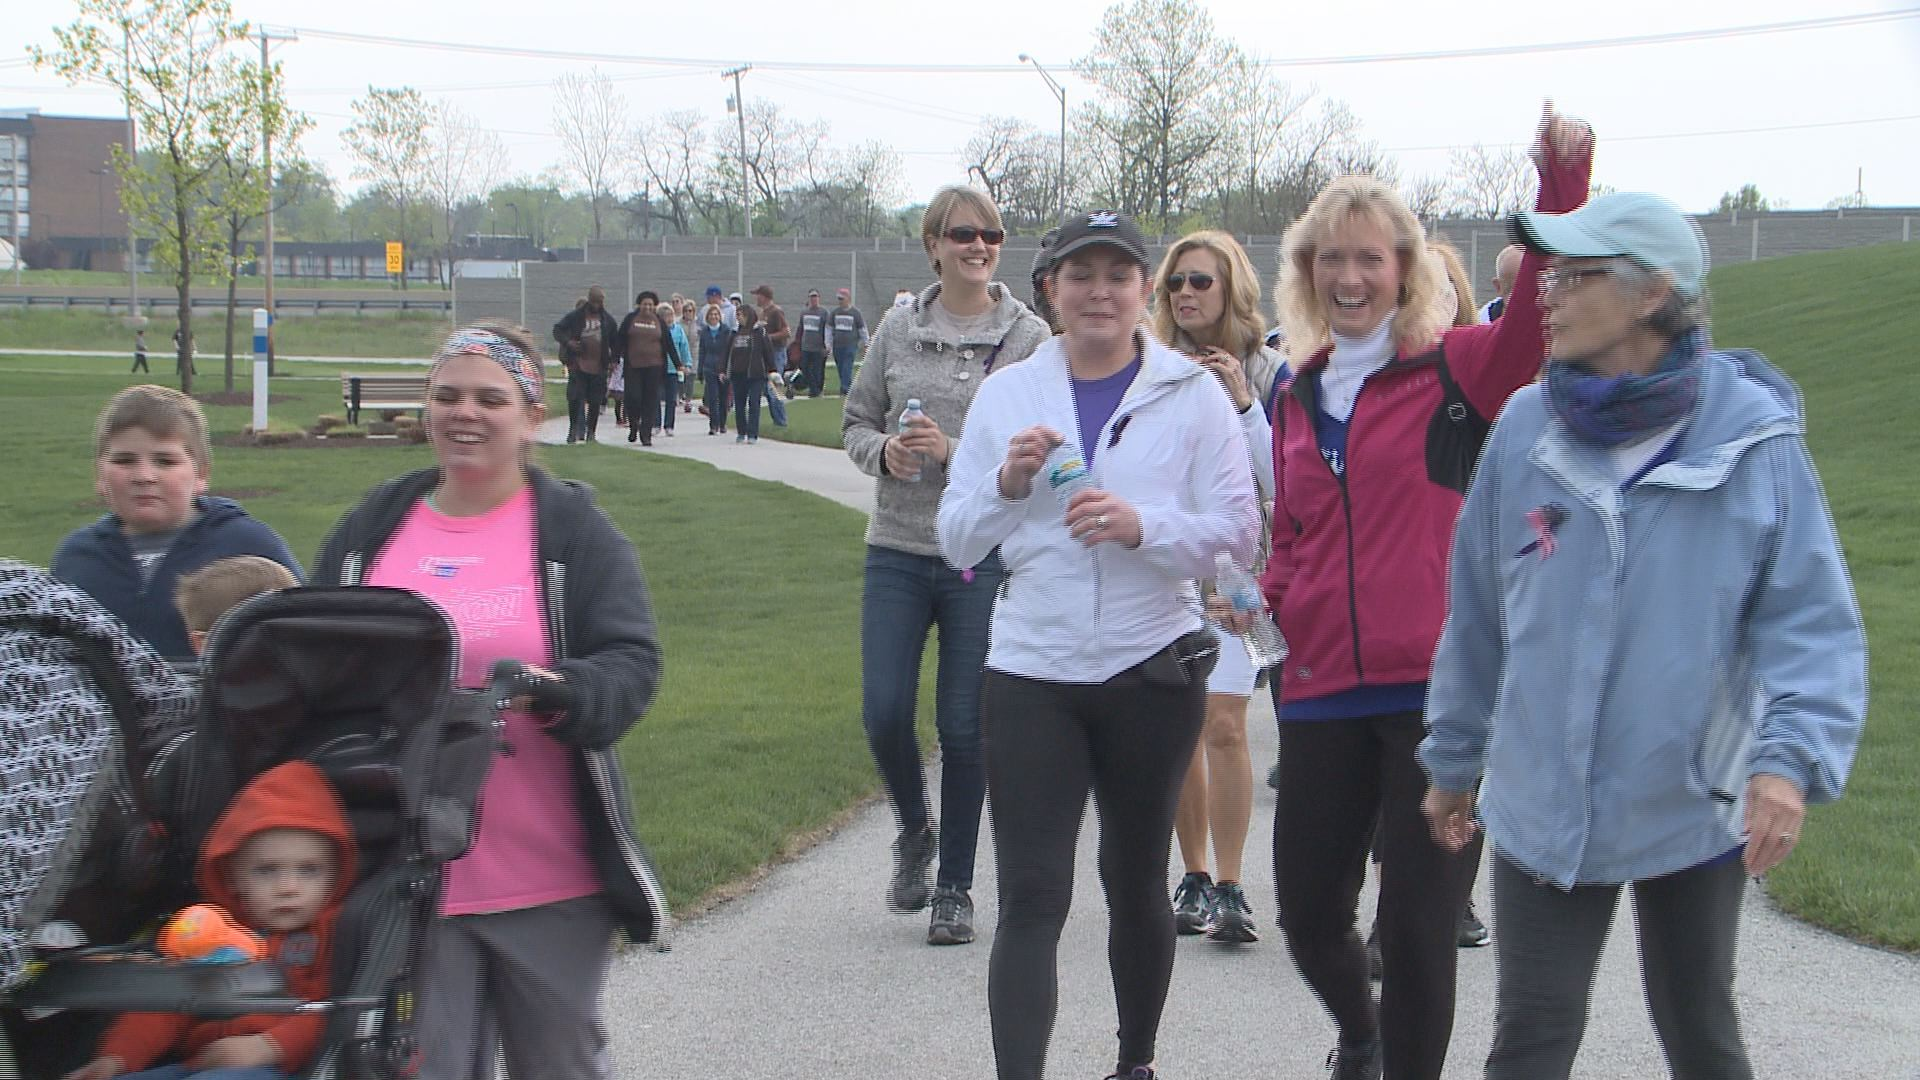 cancer walk_1526165273949.jpg.jpg